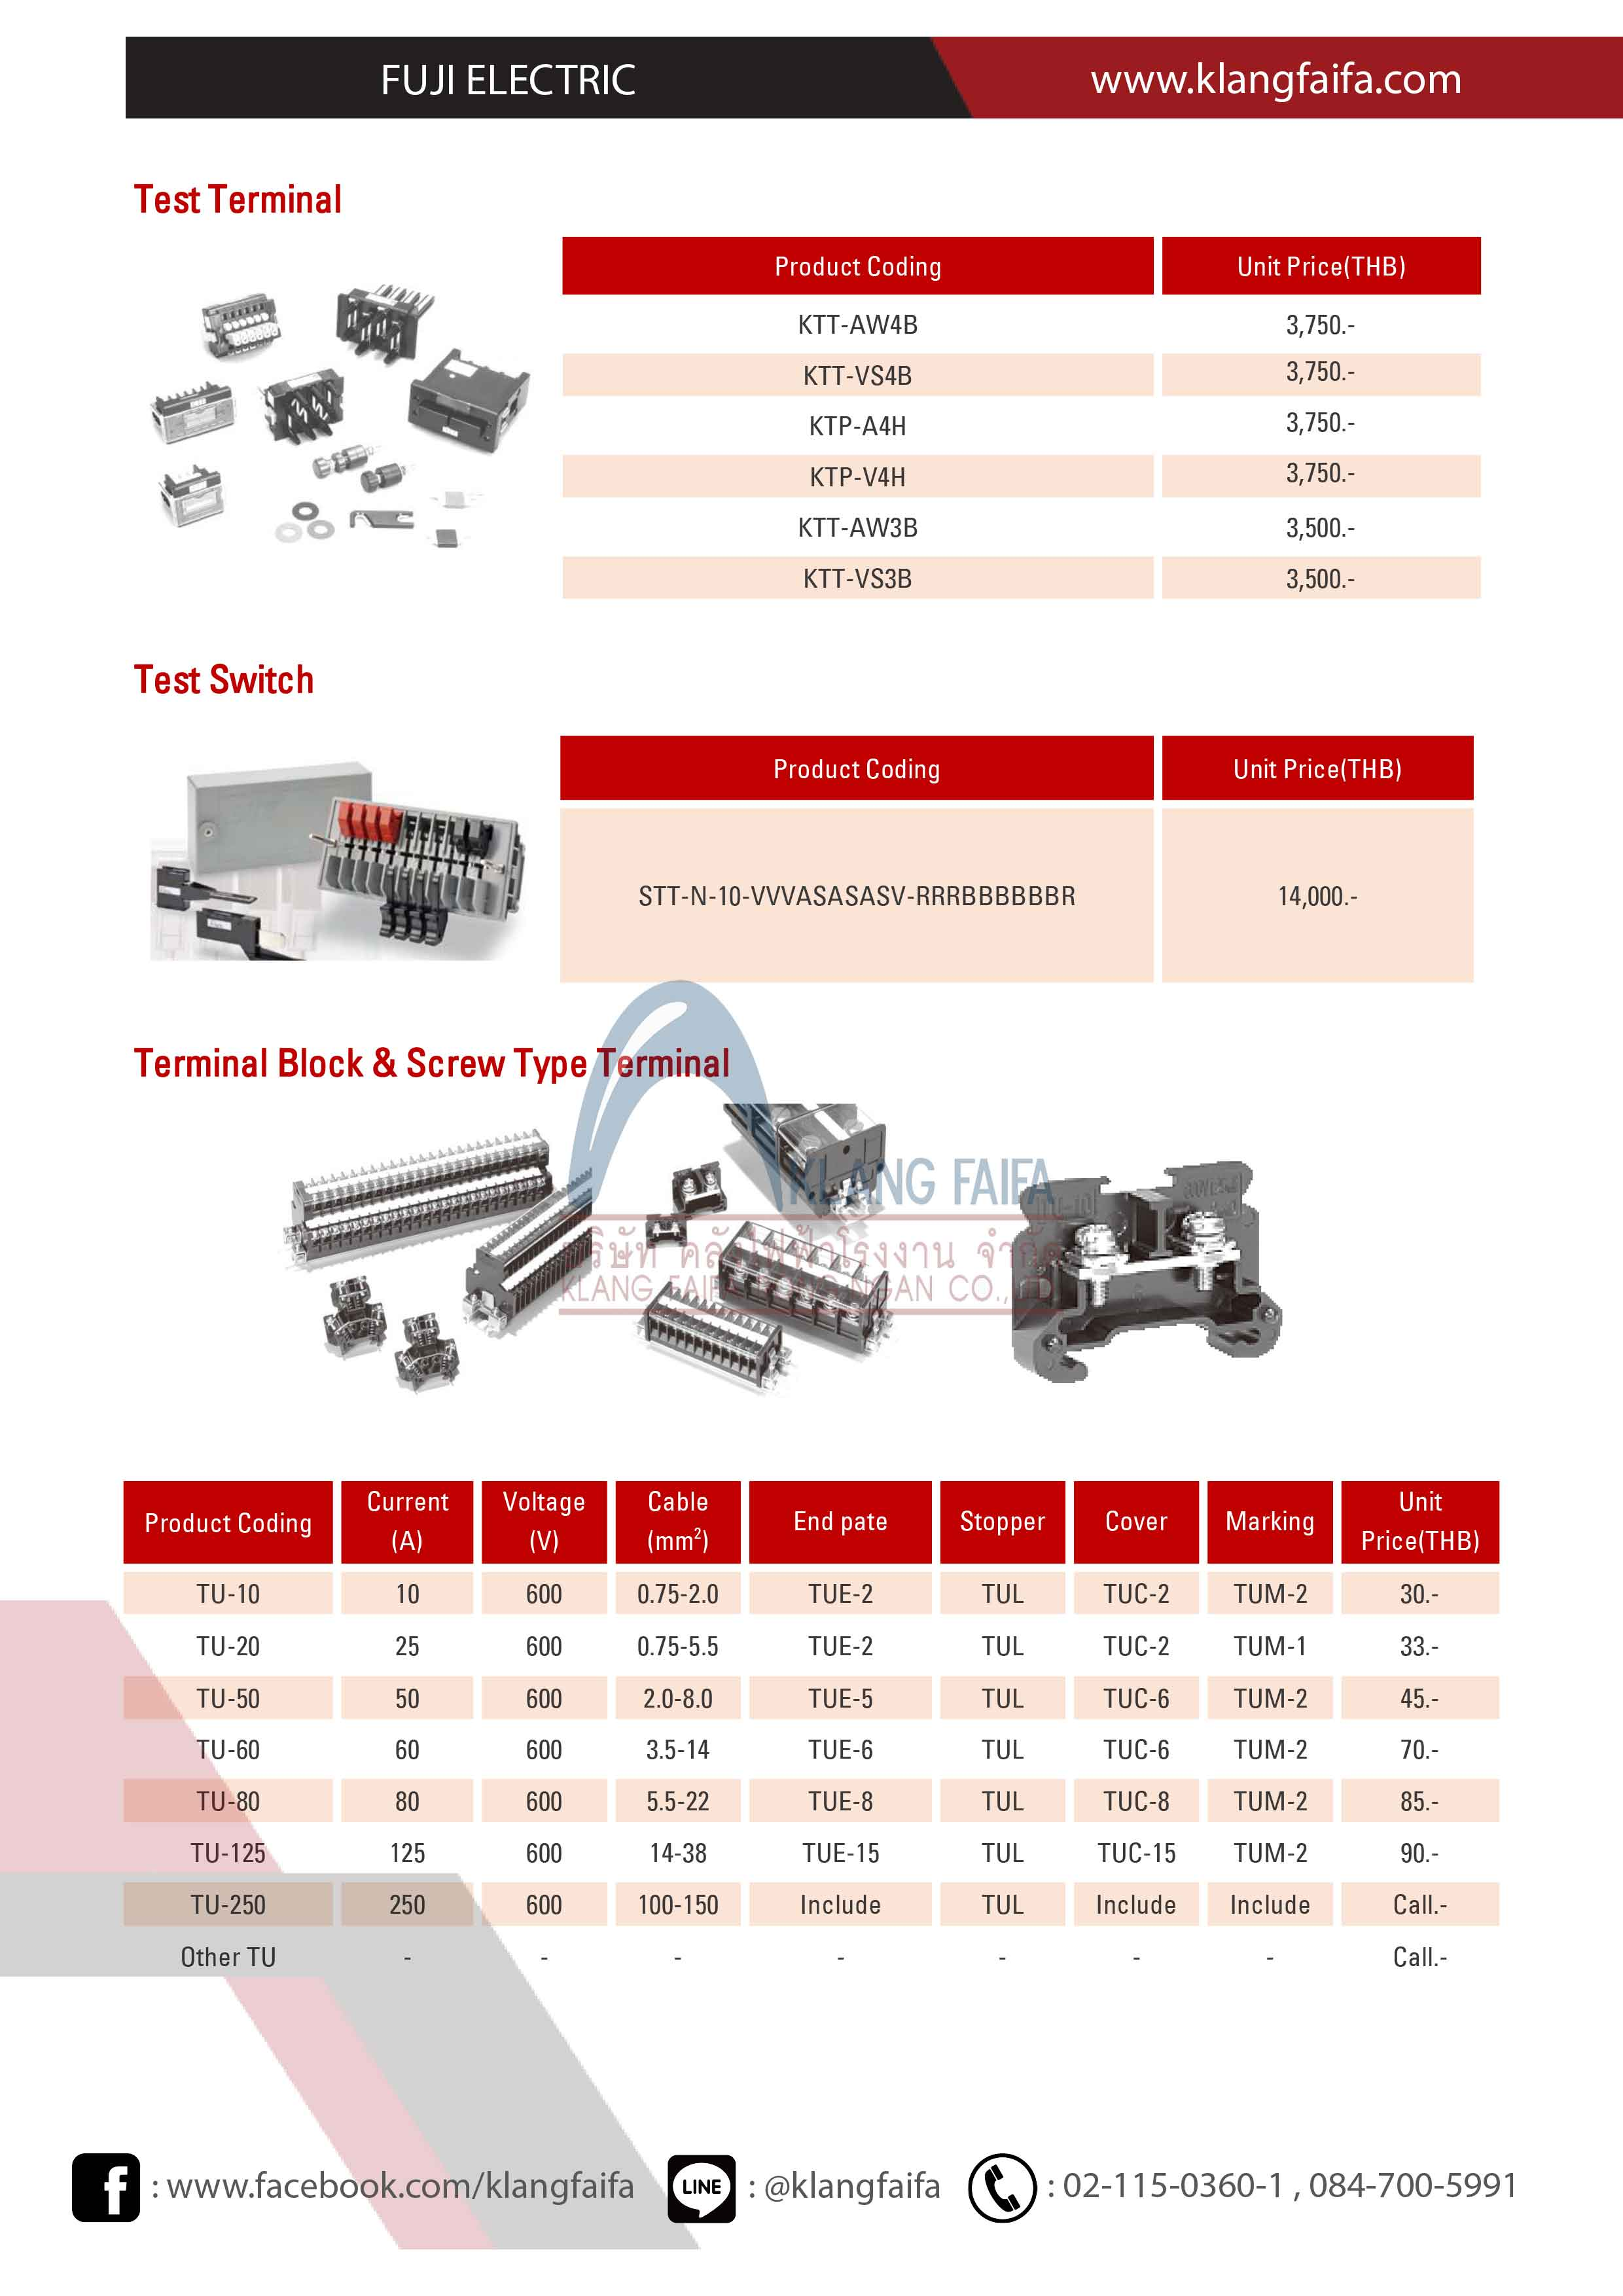 Semaphore Indicator, control Fuji, Discrepancy Switch, Latching Relay,Test Terminals,Control Switch, TerminalBlock,Rail